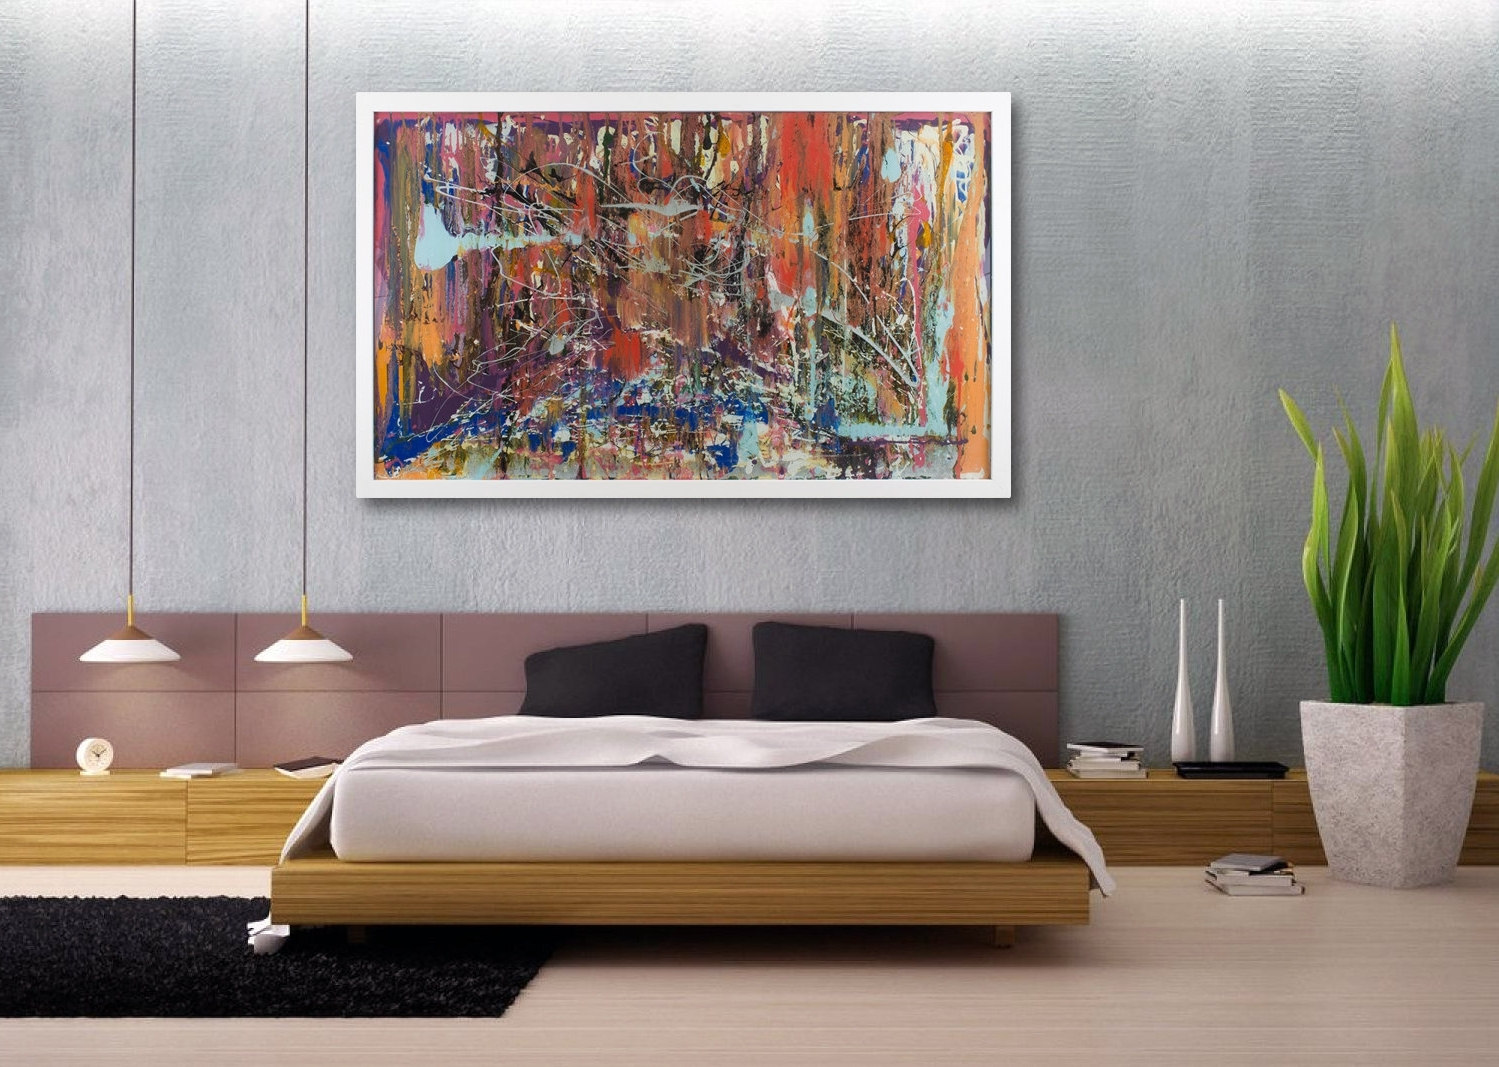 Glass Abstract Wall Art For Well Liked Innovative Way Modern Wall Decor Room — Joanne Russo Homesjoanne (View 8 of 15)